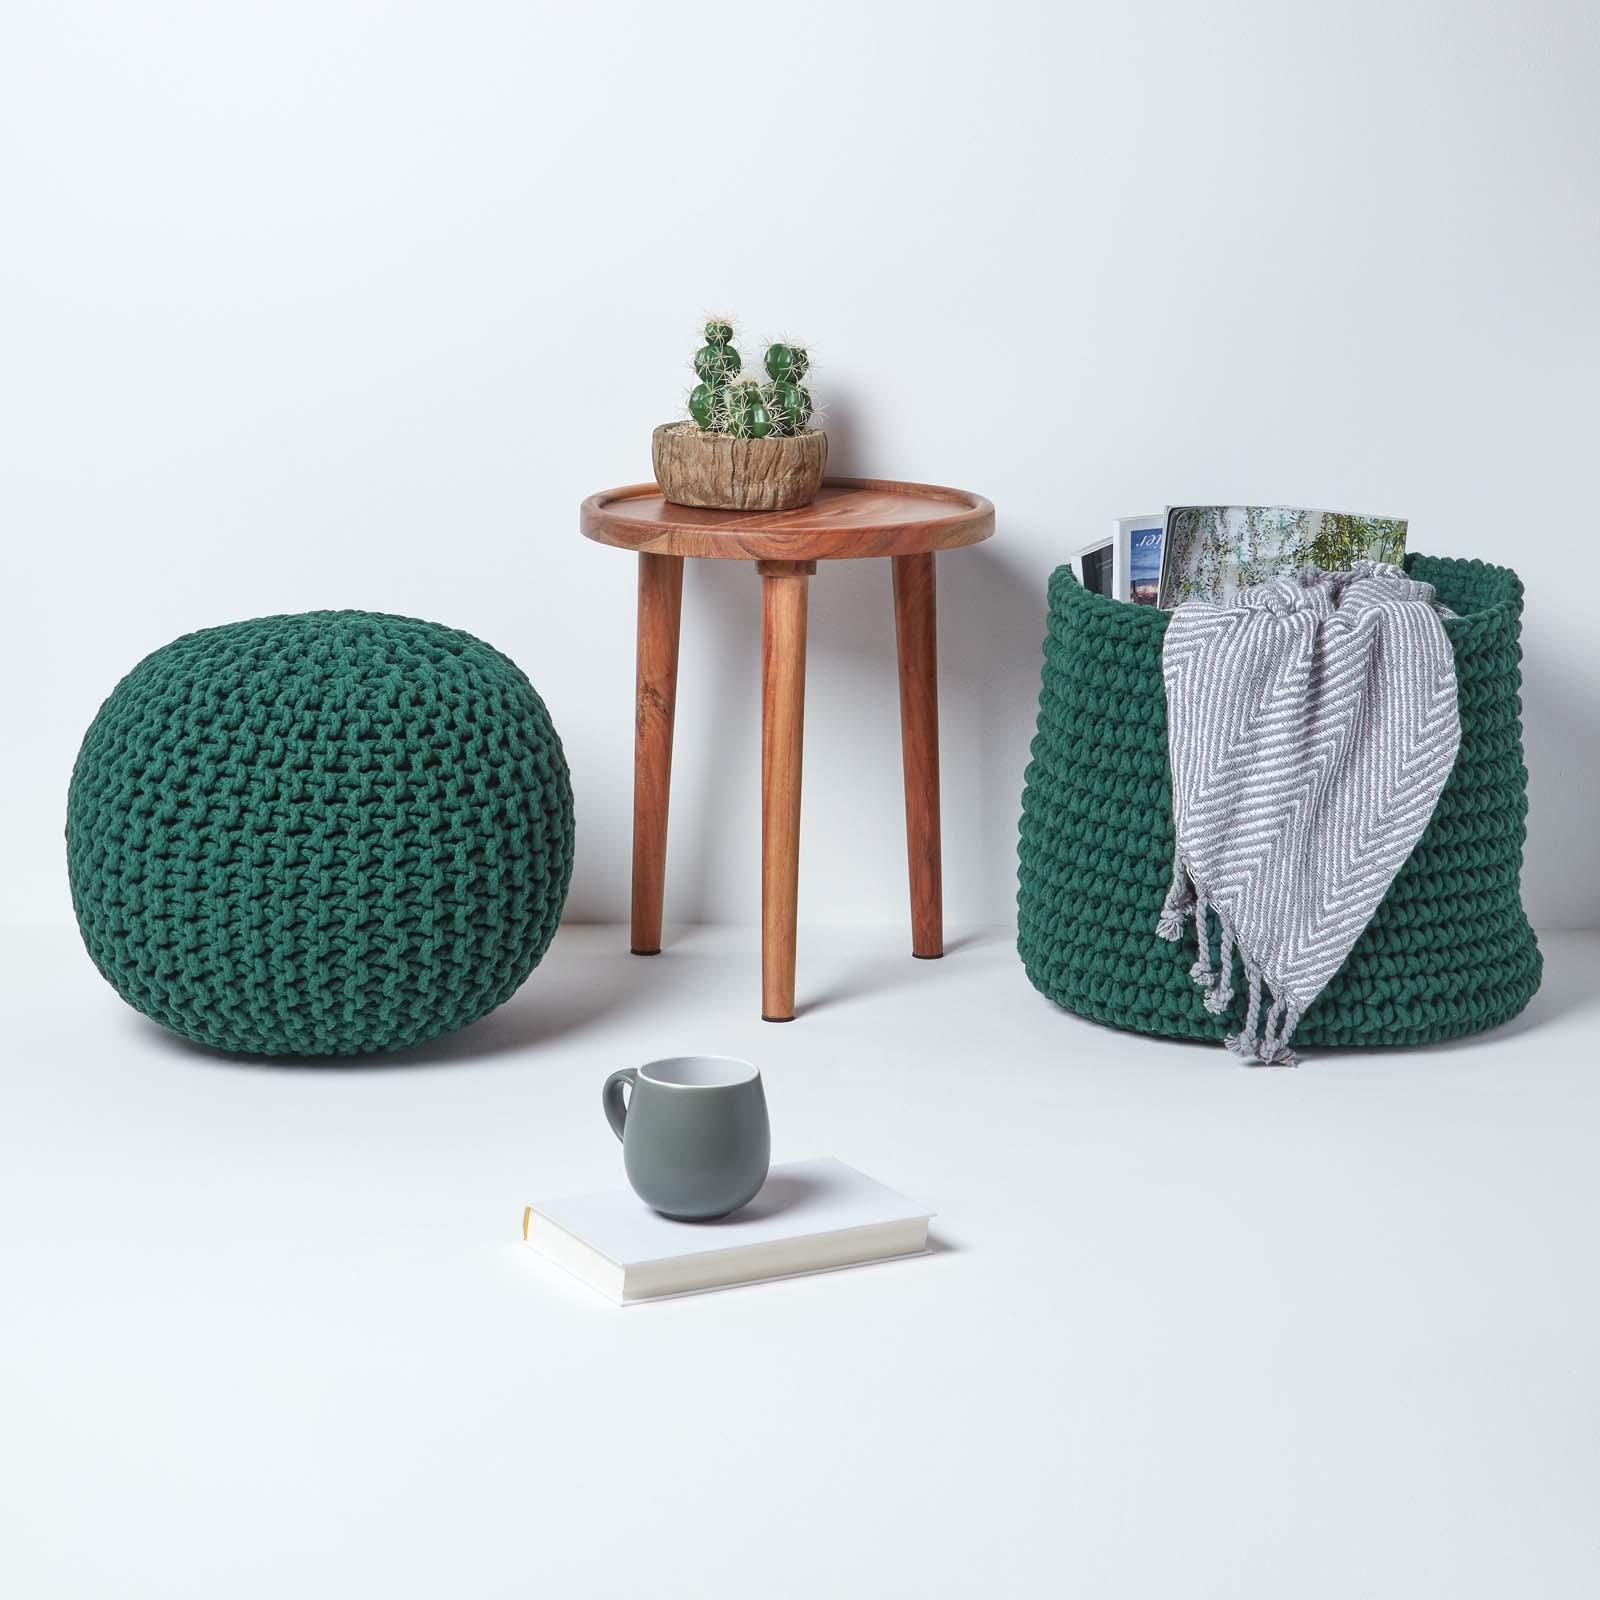 Hand-Knitted-100-Cotton-Pouffes-Round-Sphere-Or-Cube-Square-Chunky-Footstools thumbnail 49